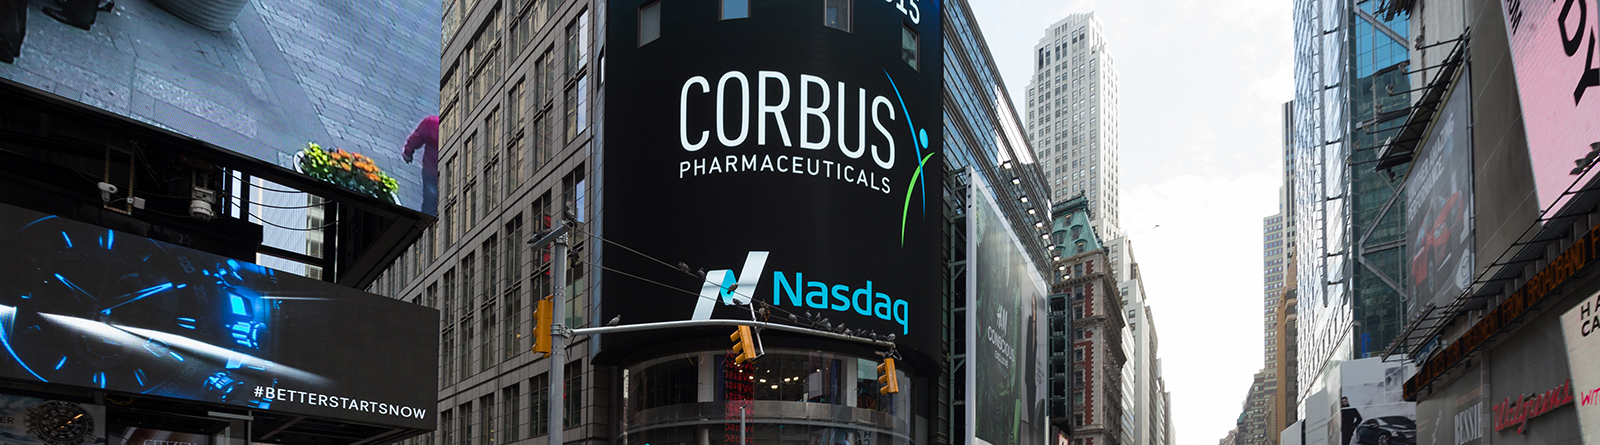 Corbus Pharmaceuticals to Report First Quarter Results on May 11, 2020 Banner